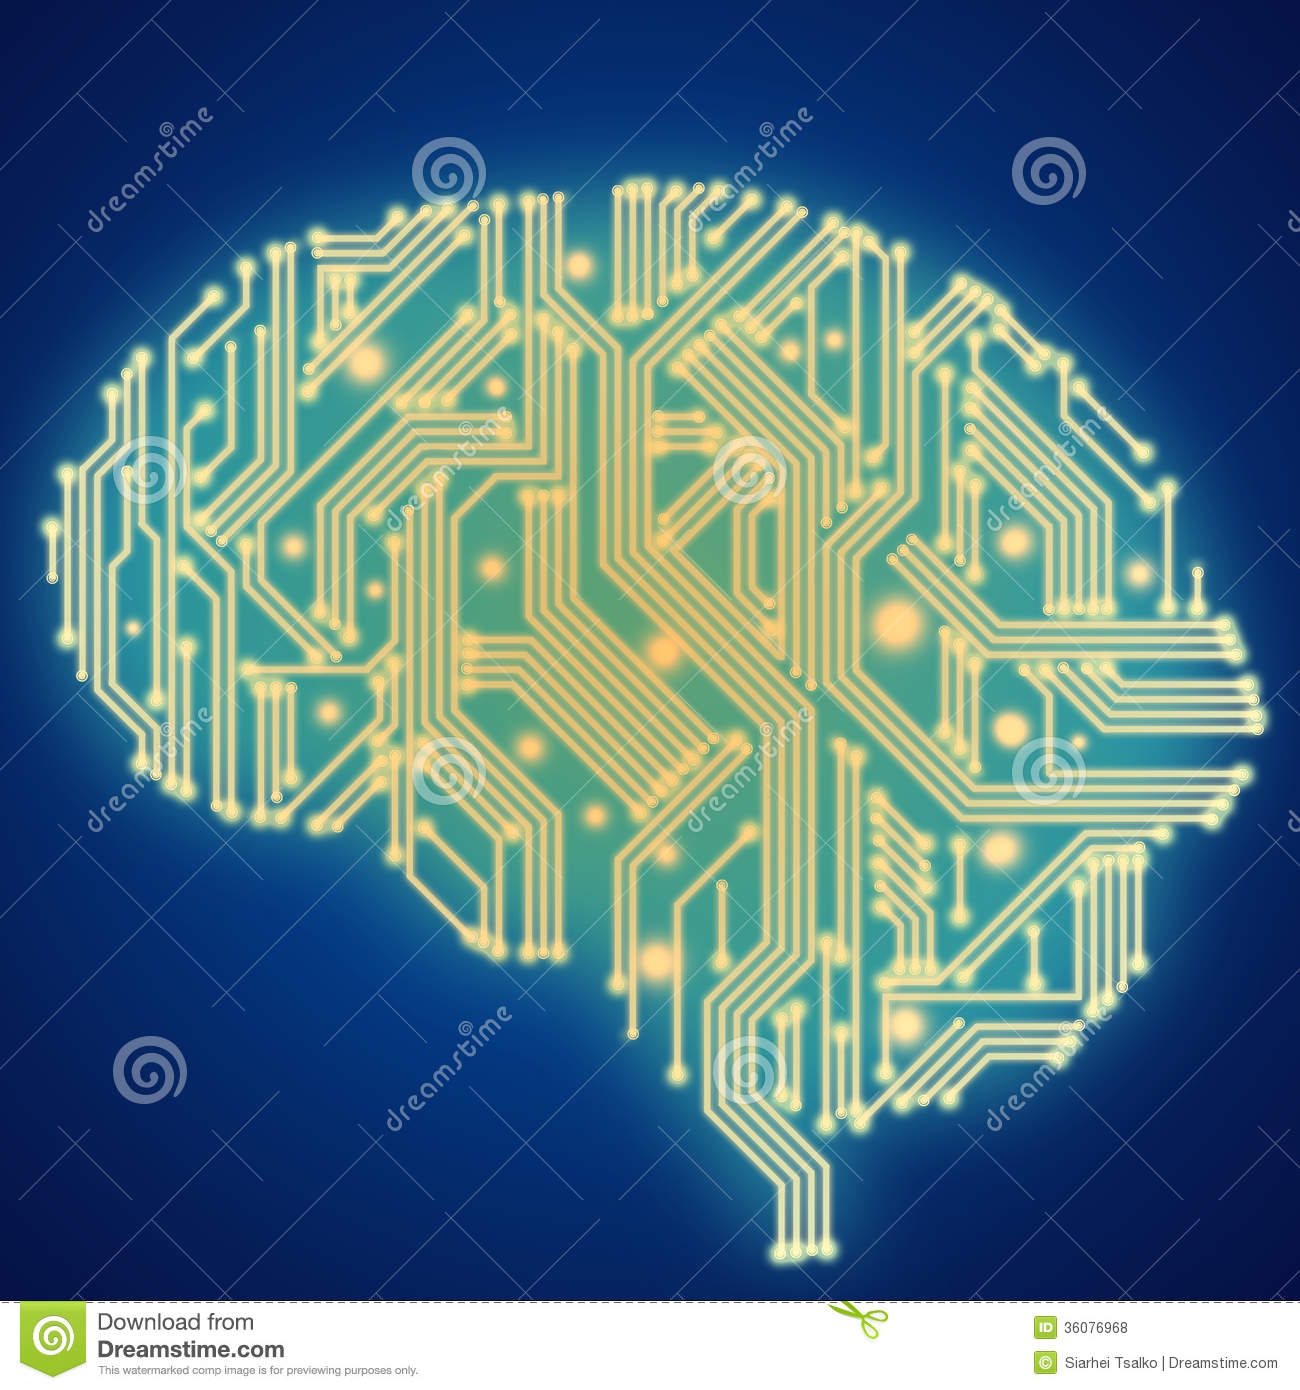 Circuit Brain Reusable : Circuit board in human brain form technological